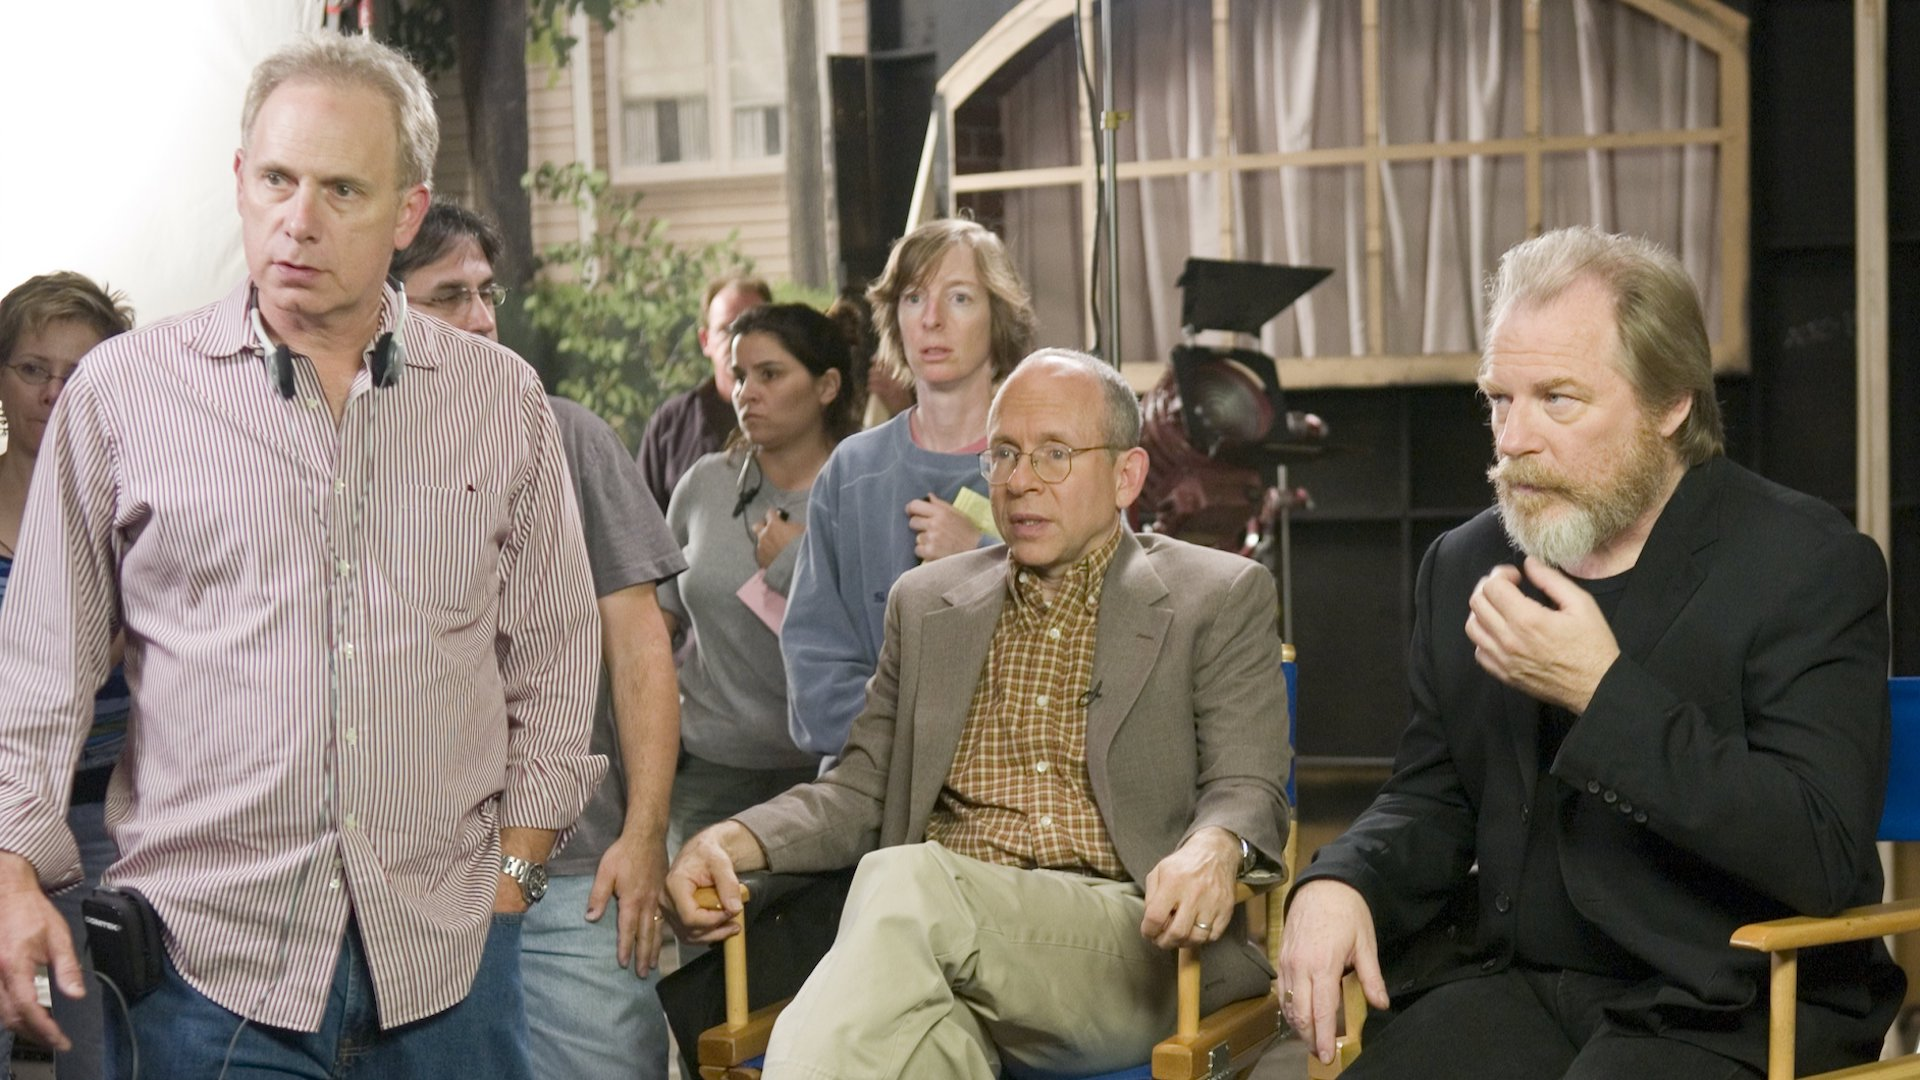 Christopher Guest (left) Bob Balaban (centre) and Michael McKean (right) on the set of For Your Consideration.